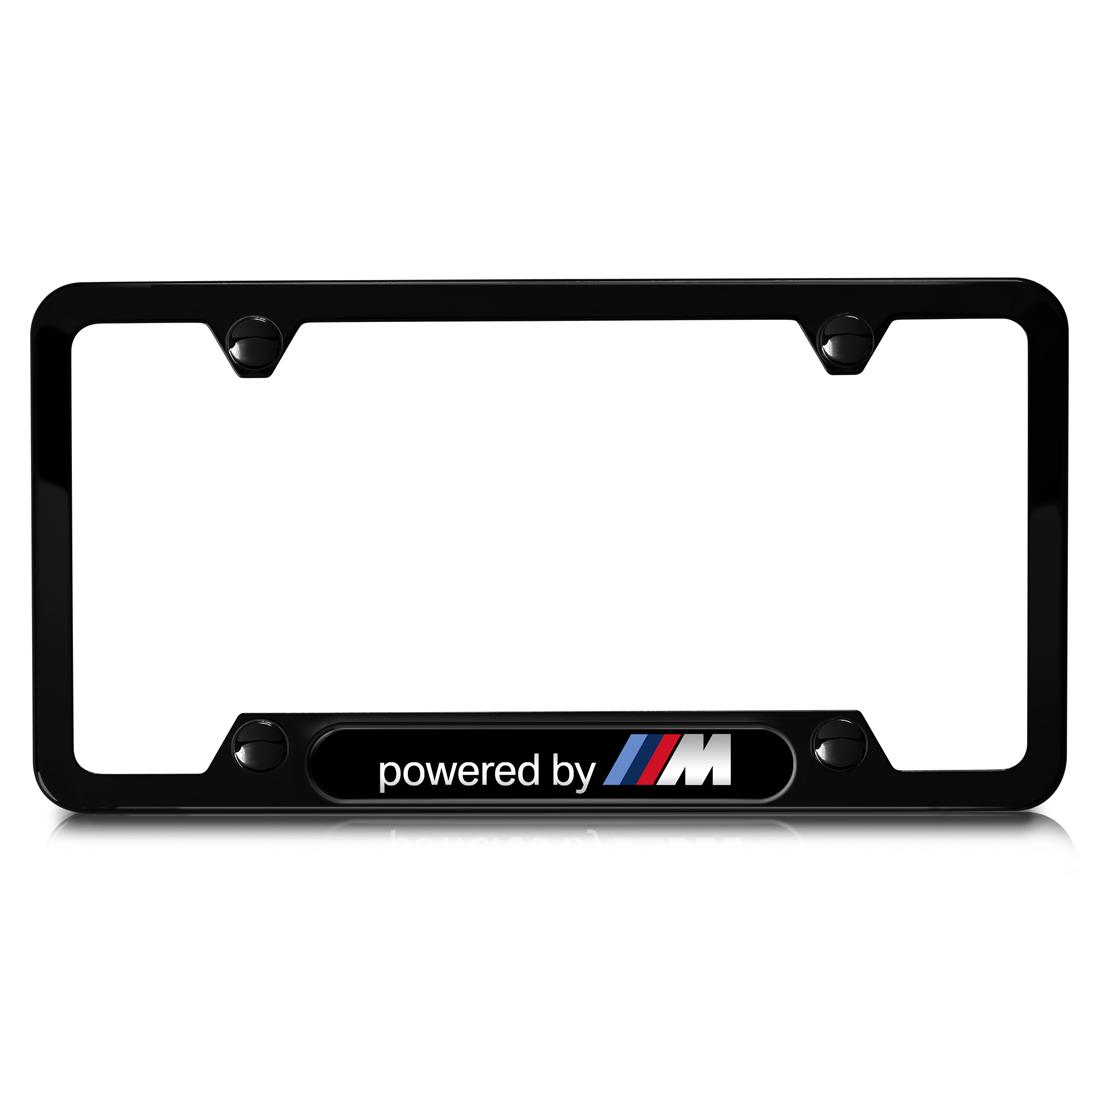 BMW Powered by M Stainless Steel License Plate Frame